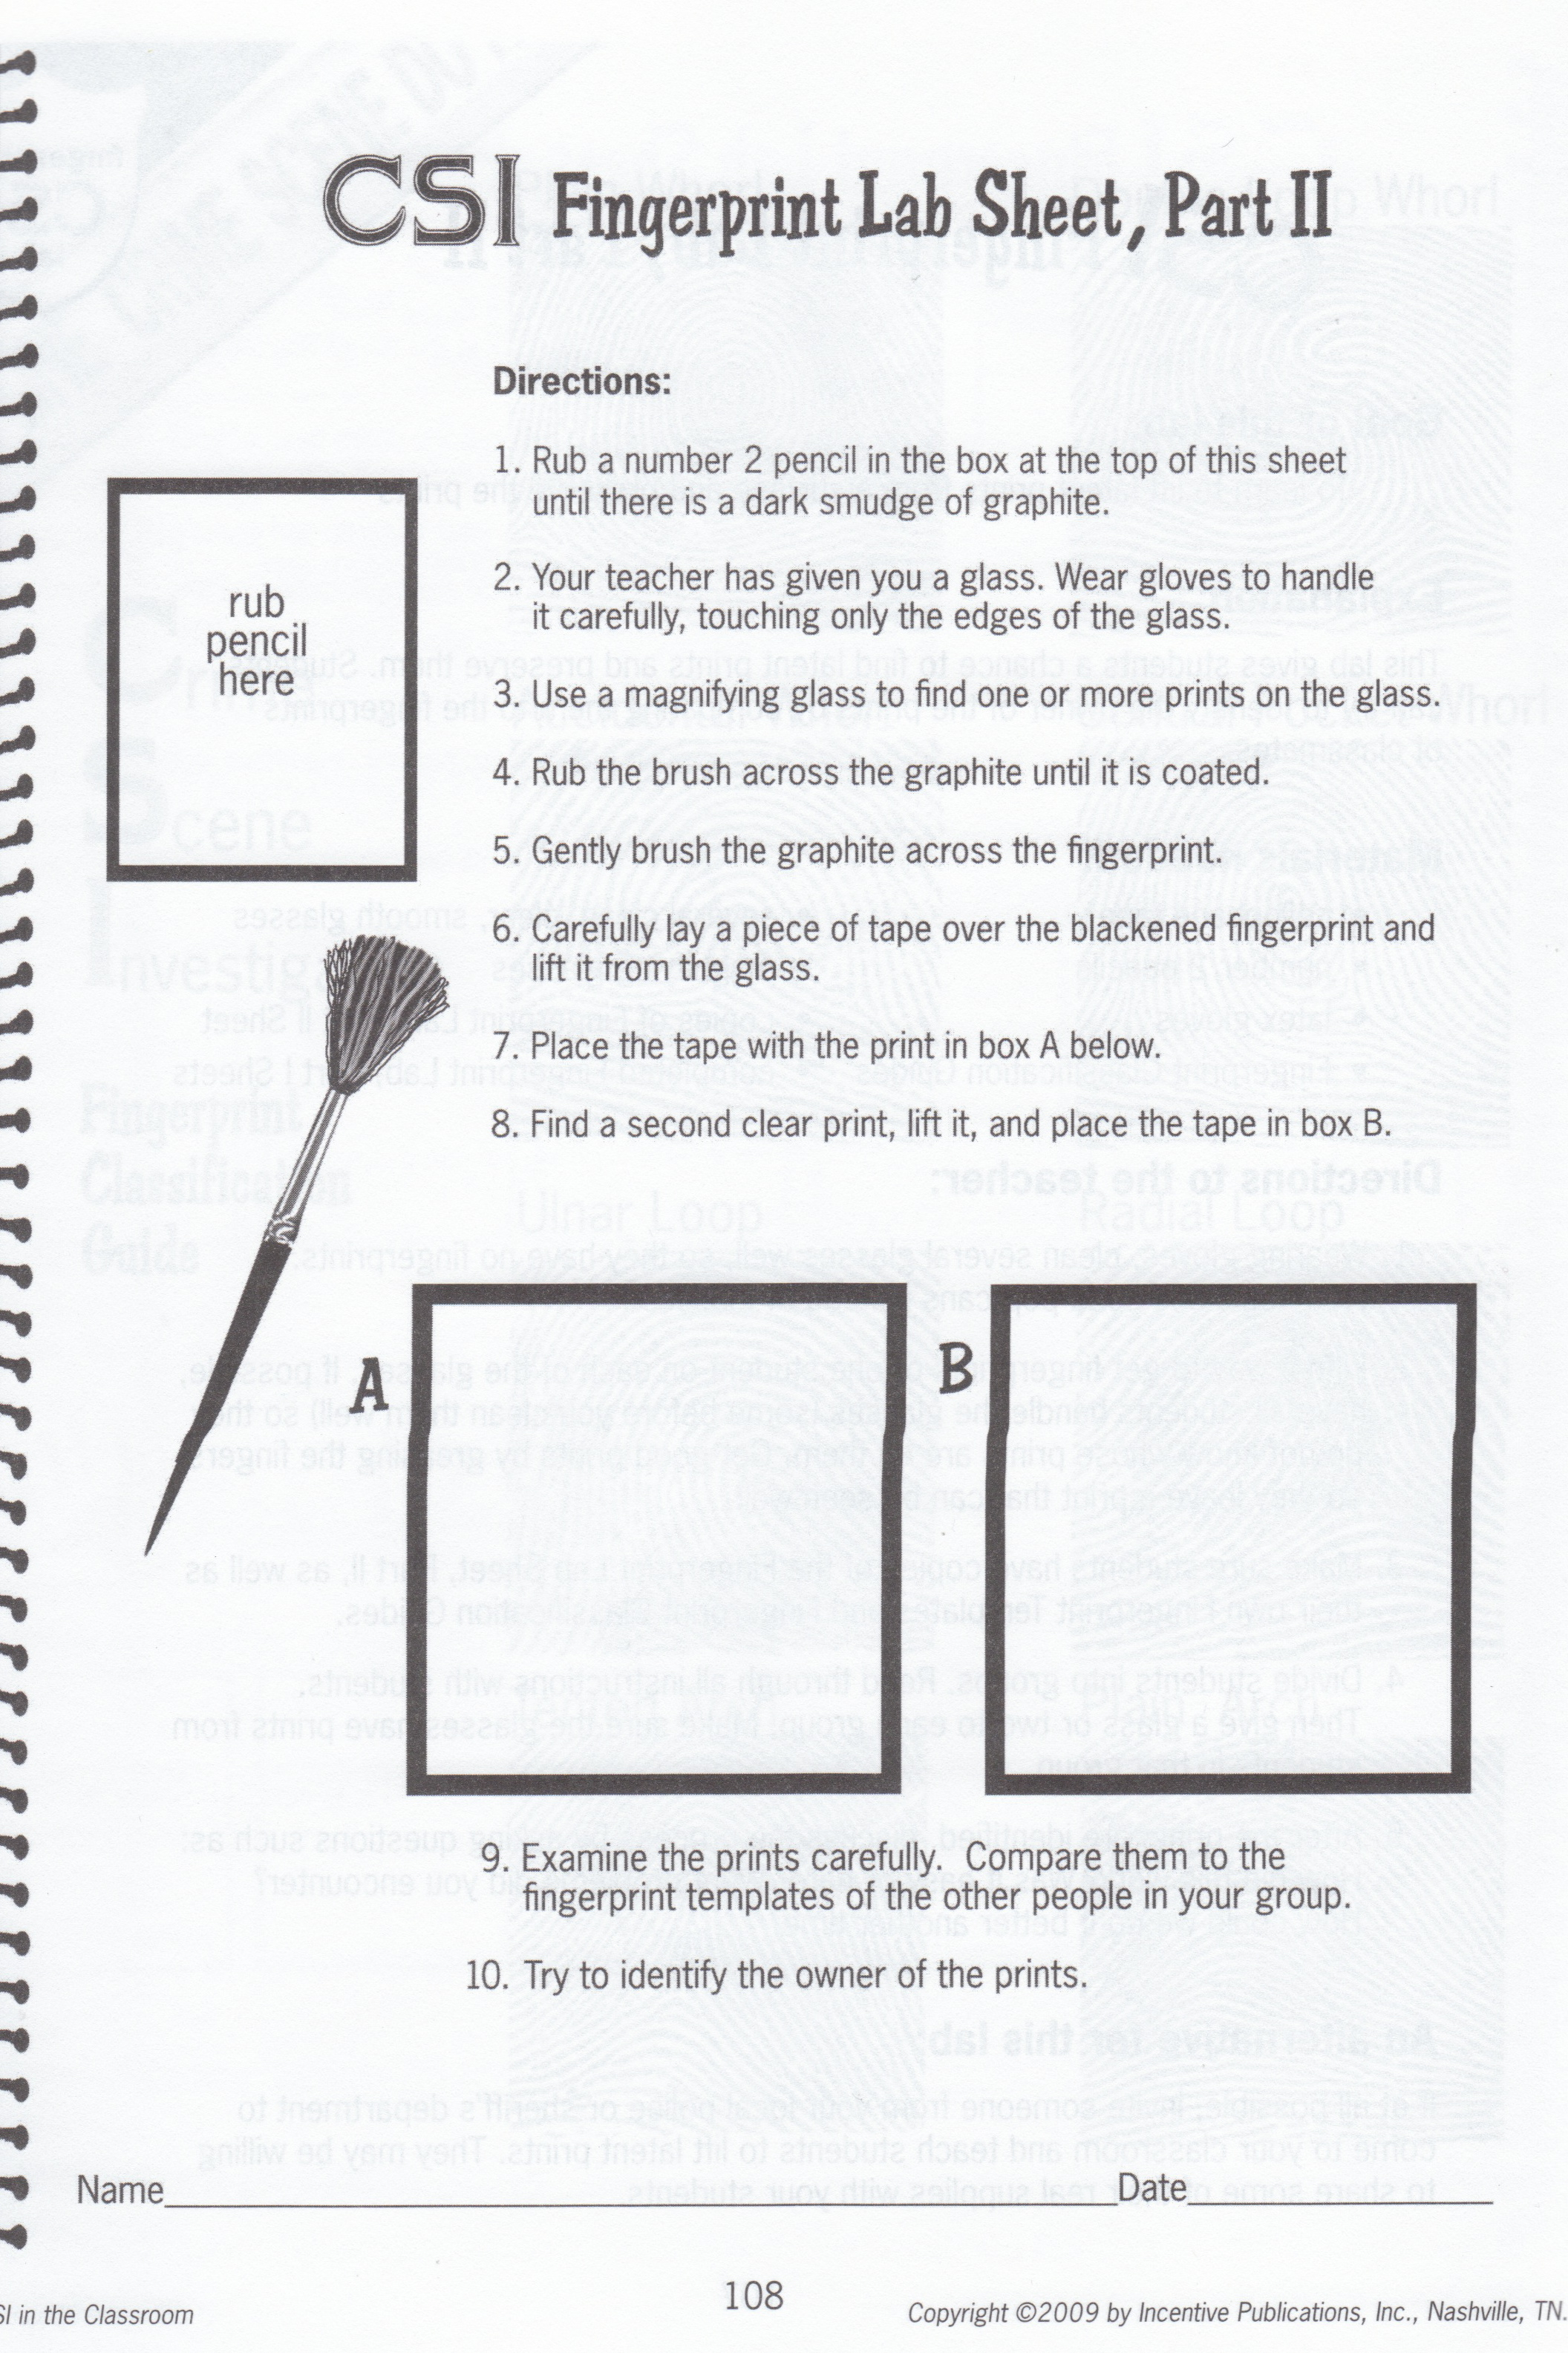 Geological Morphology of Oklahoma Henley 21st Century – Forensic Entomology Worksheet